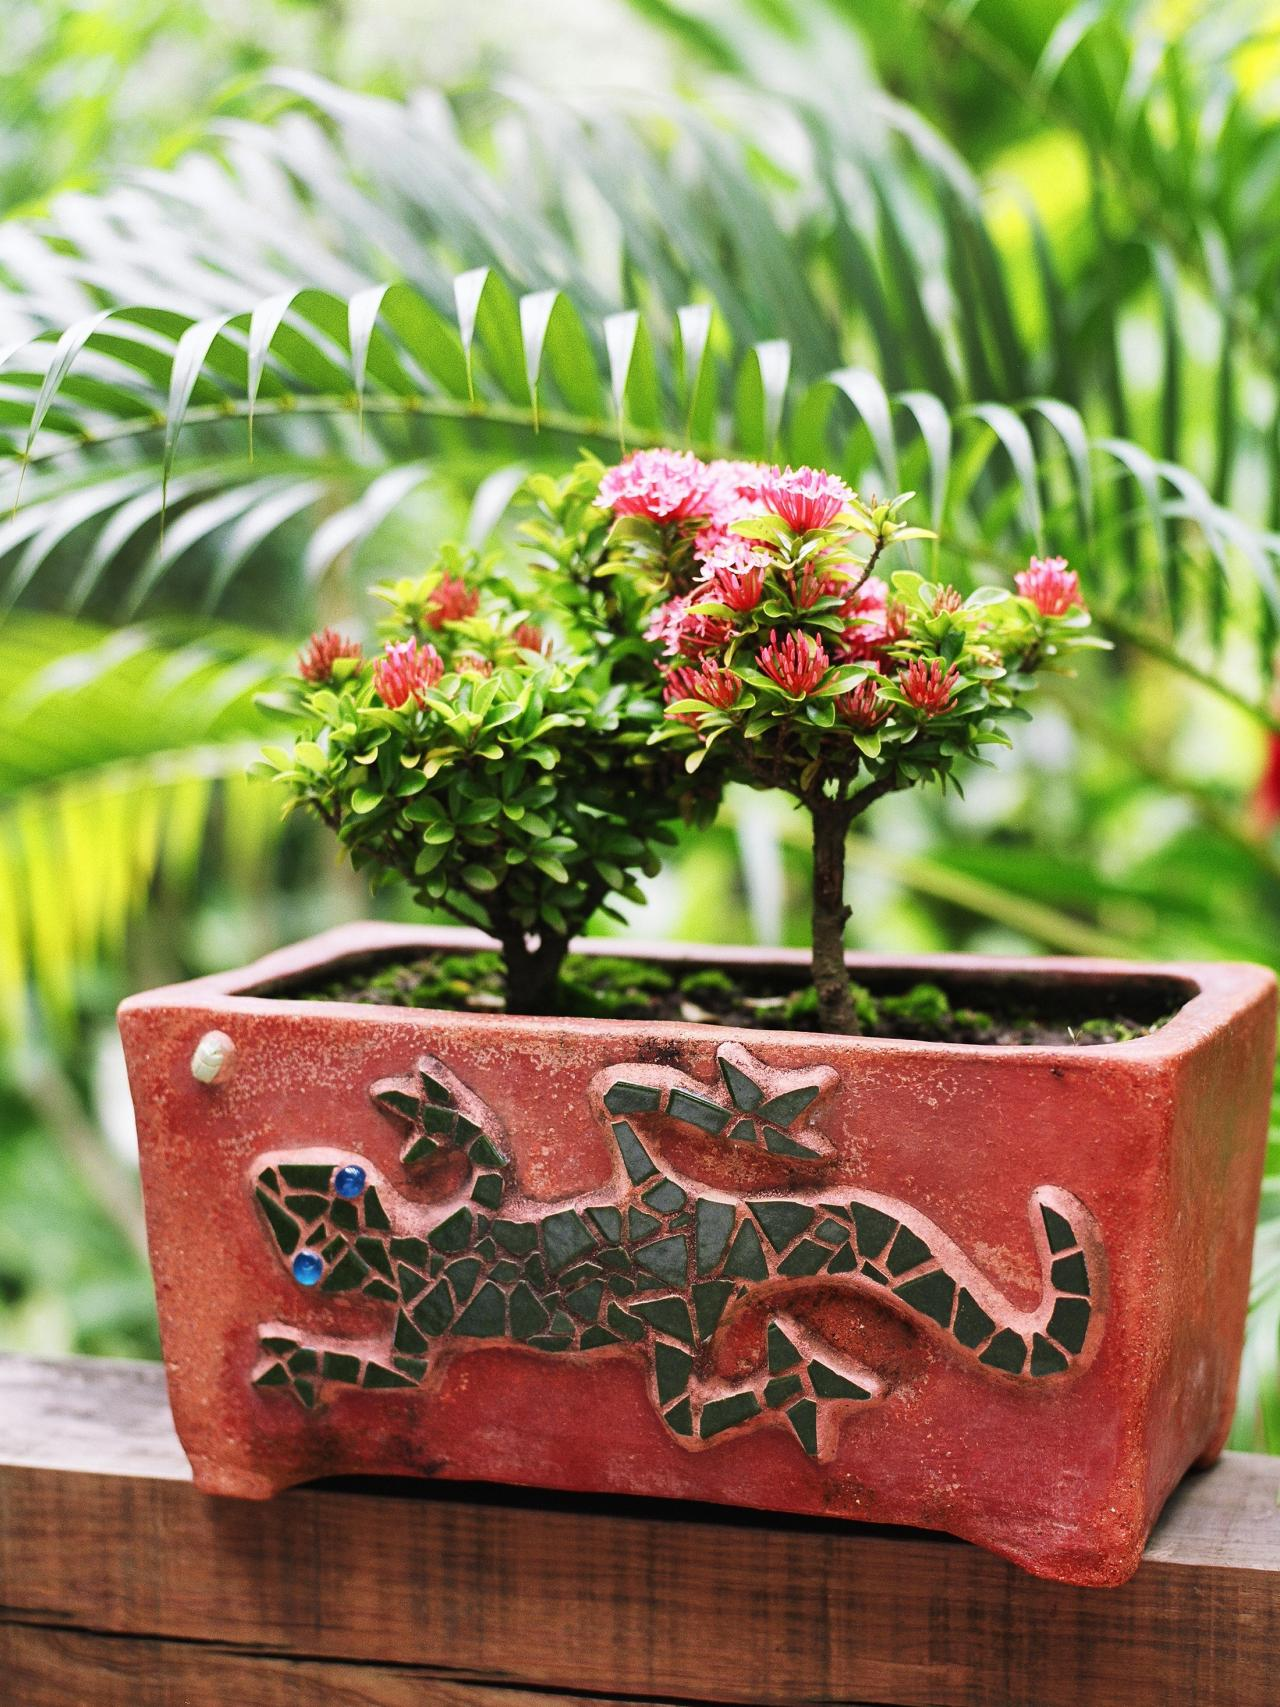 How to decorate with miniature roses hgtv for Outdoor decorating with potted plants